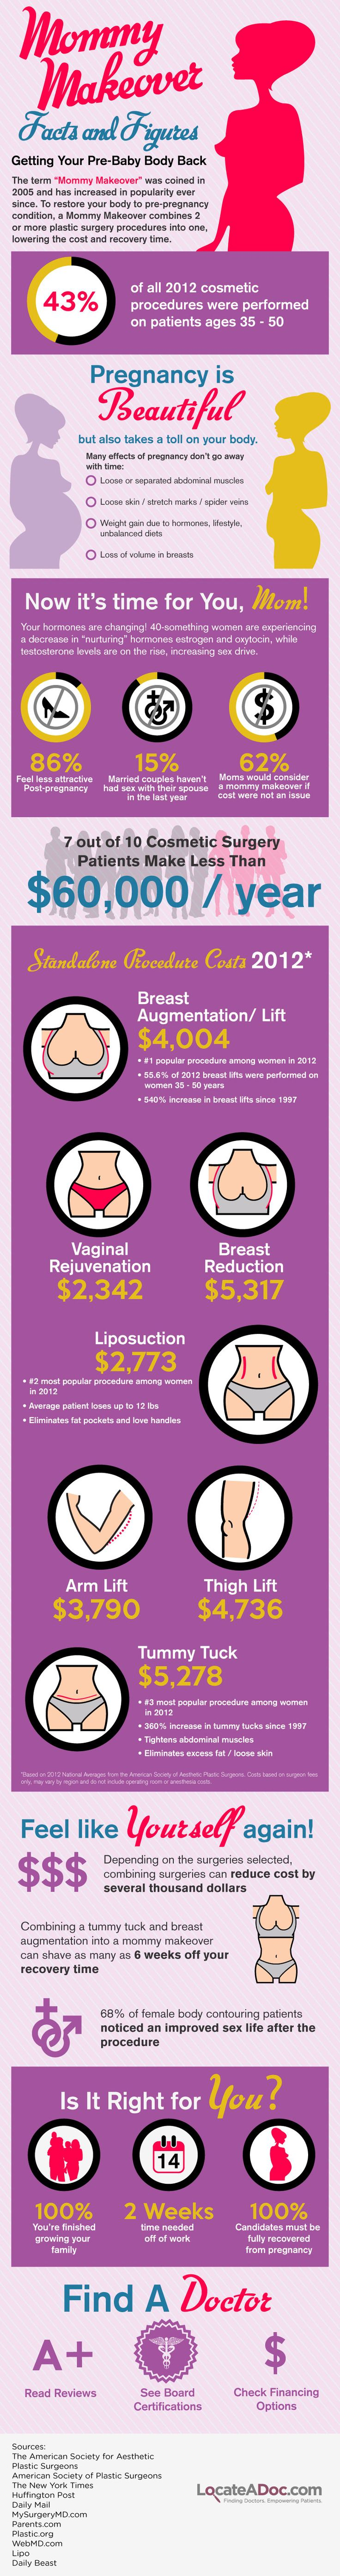 Mommy Makeover facts and figures  #infographic